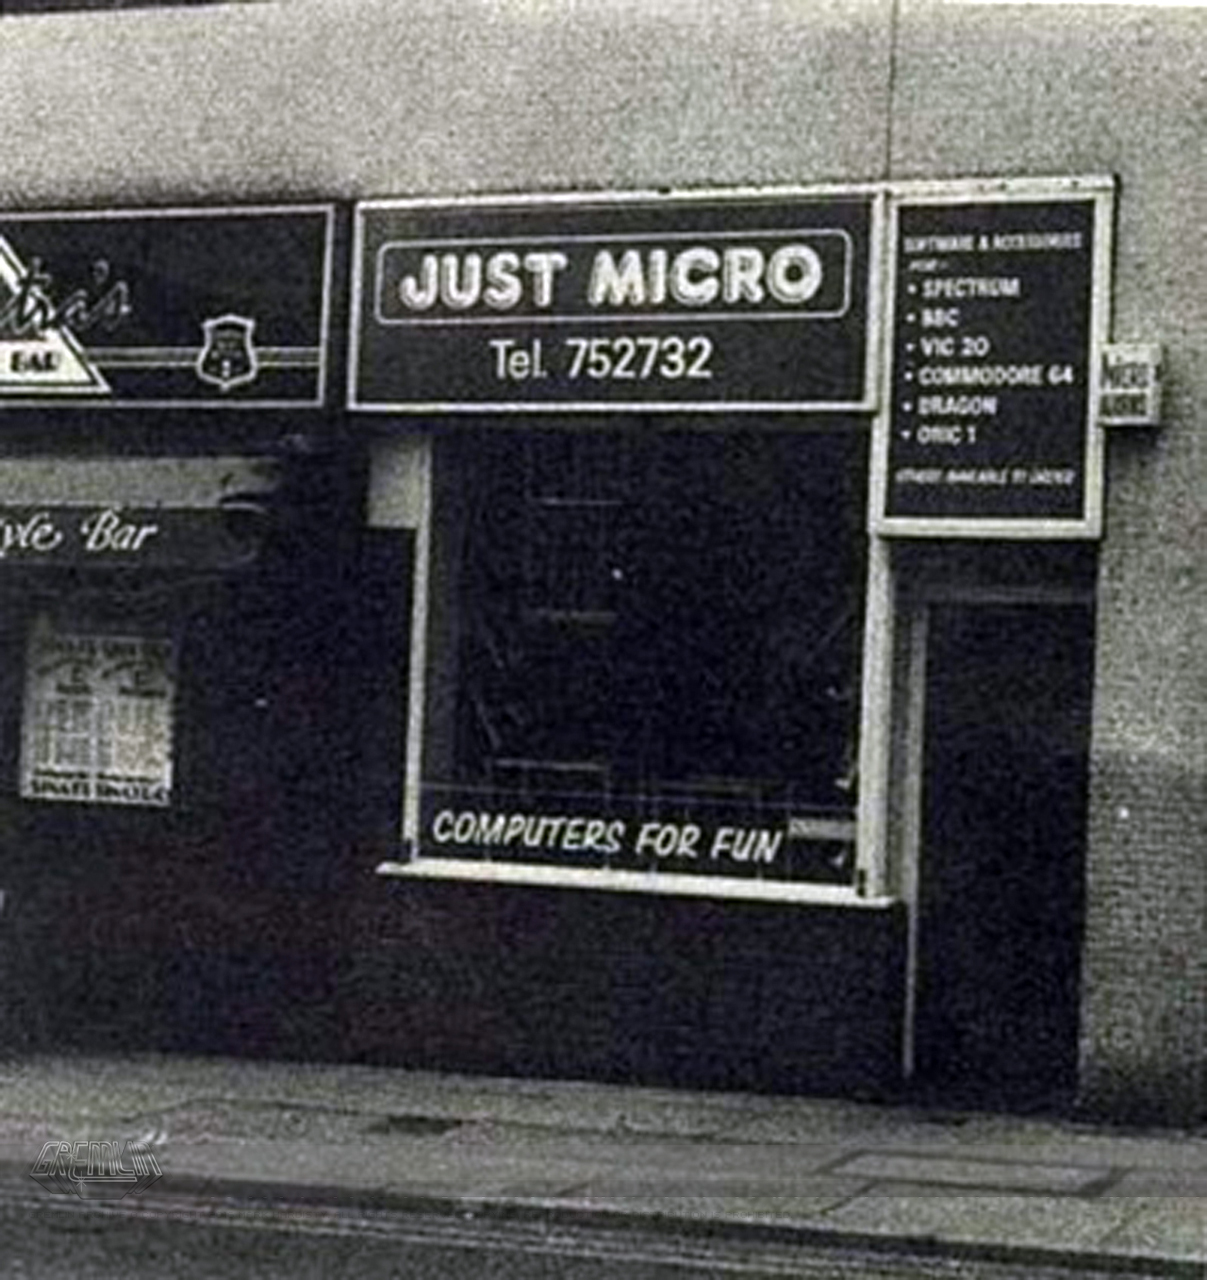 Just Micro